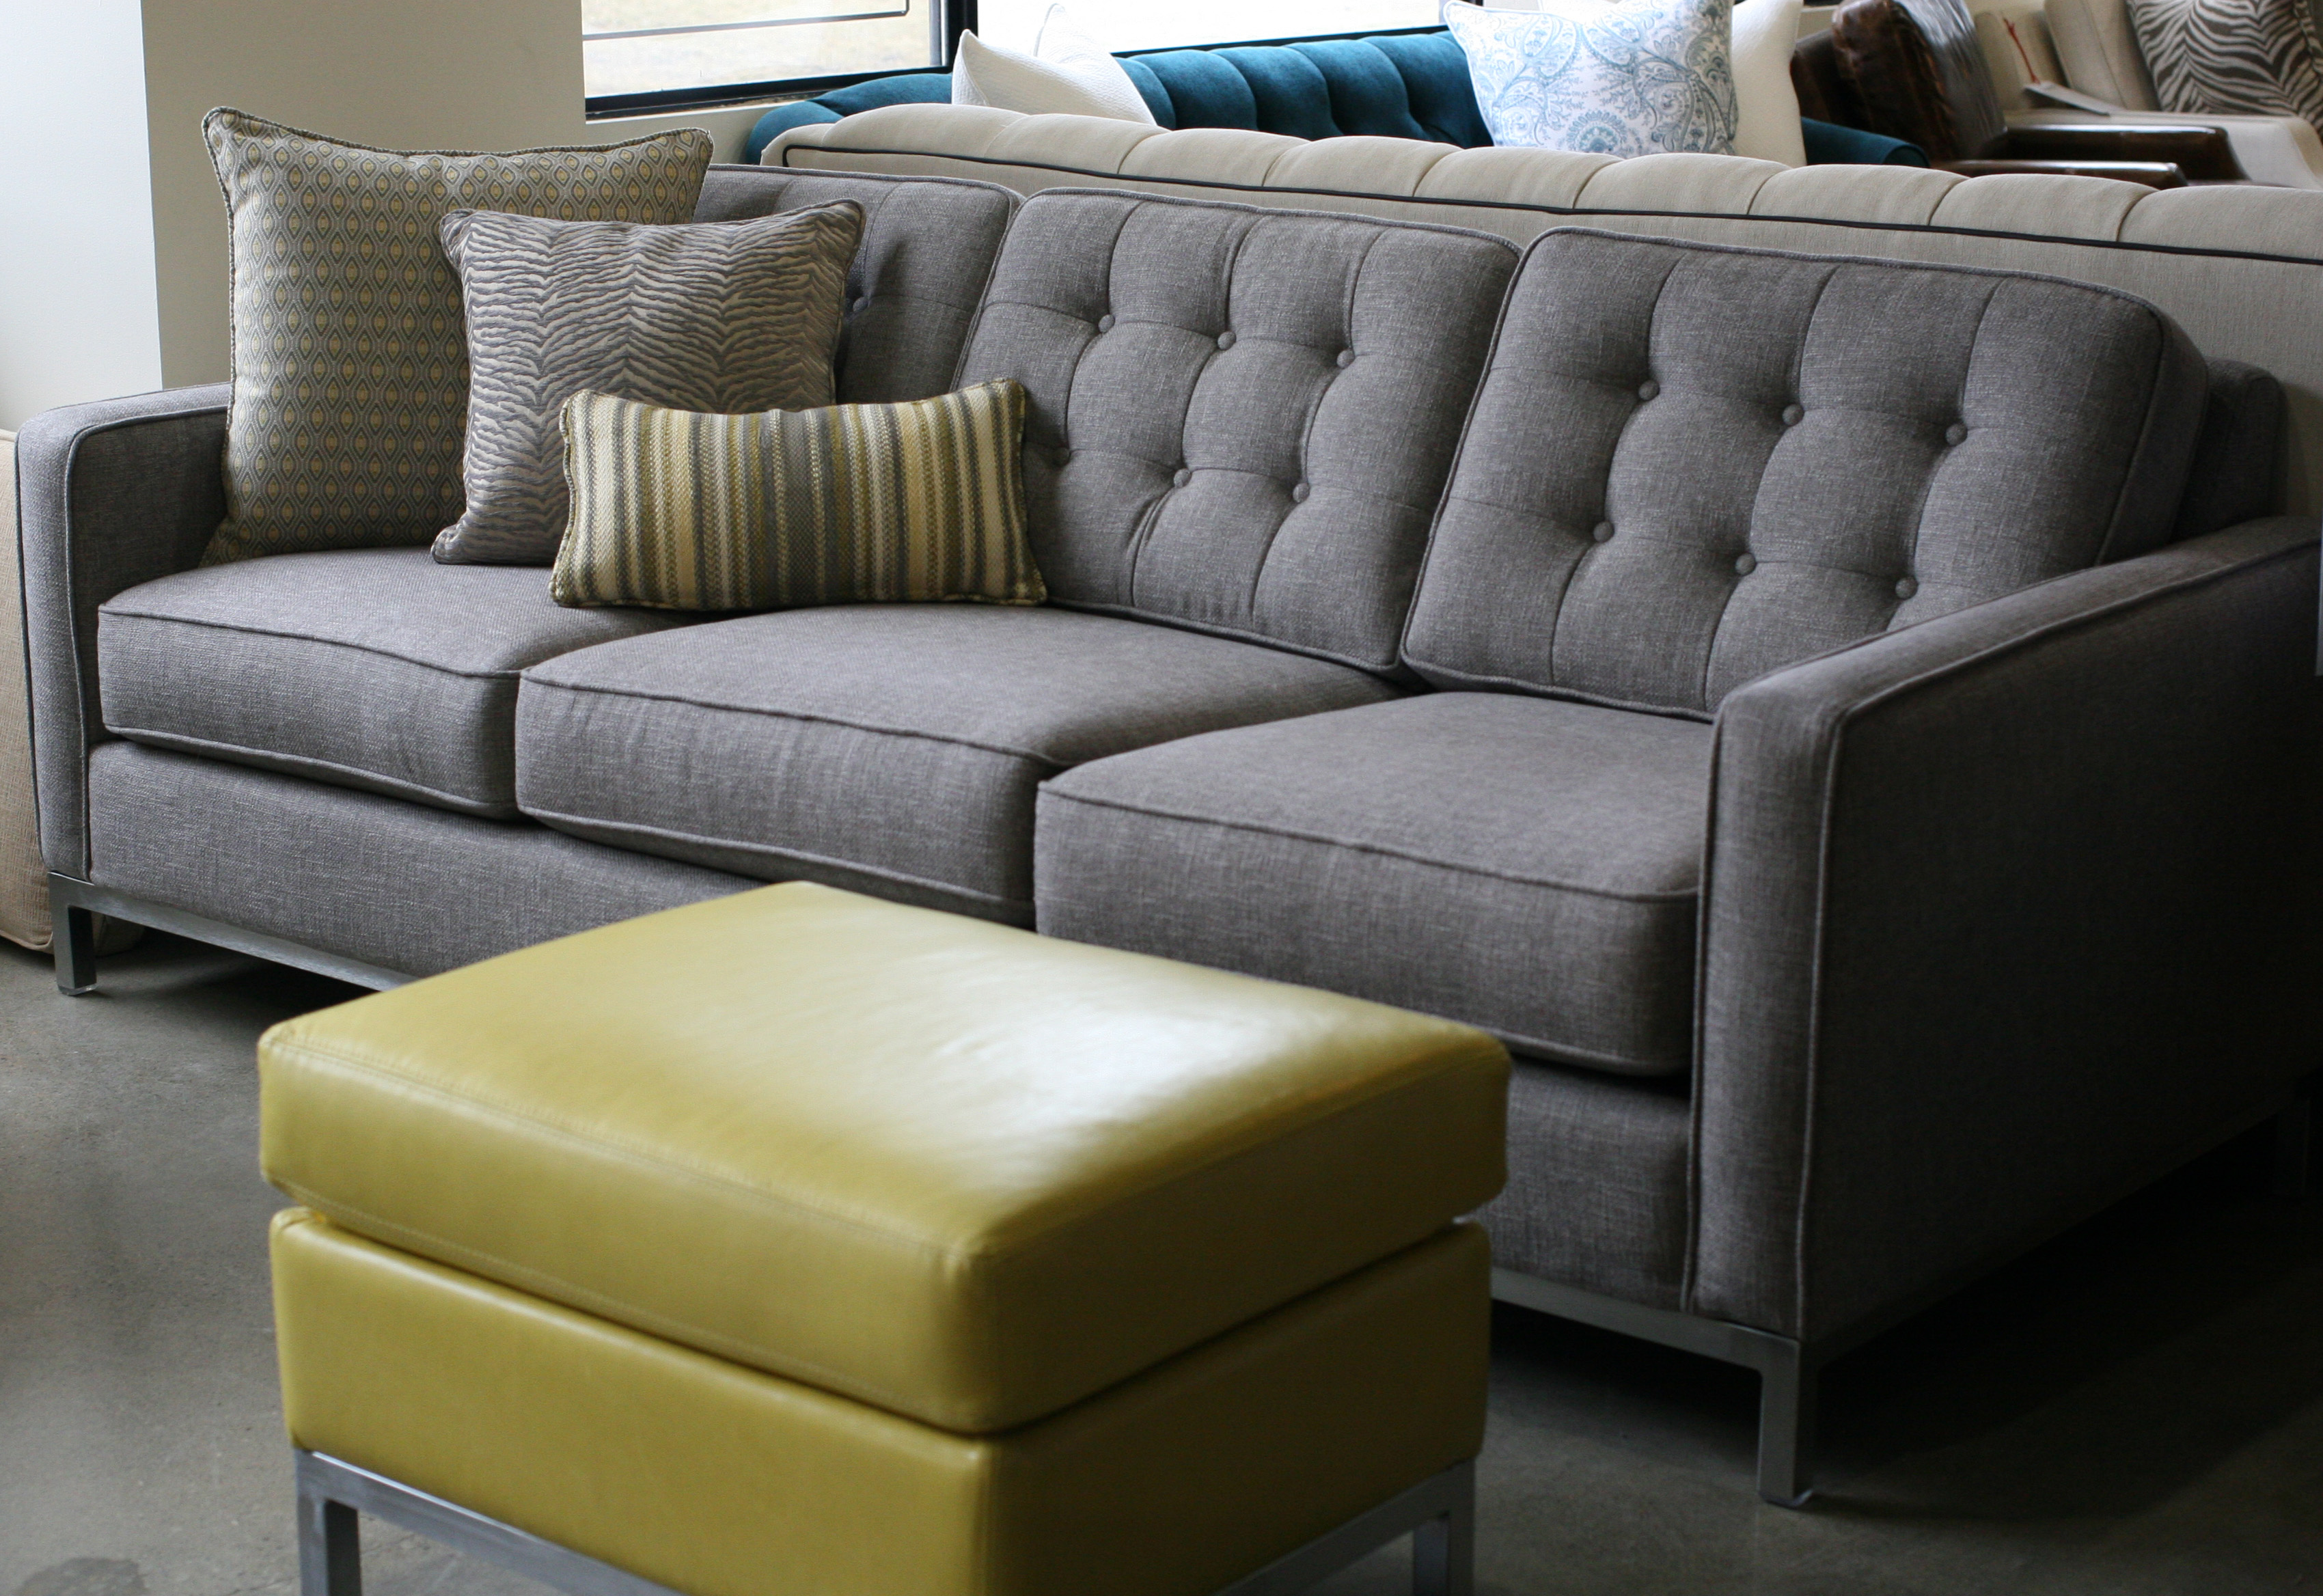 adab1517ec6 Condo-size tufted Josh sofa with accent pillows and citron leather ottoman.  Josh sofa w ottoman